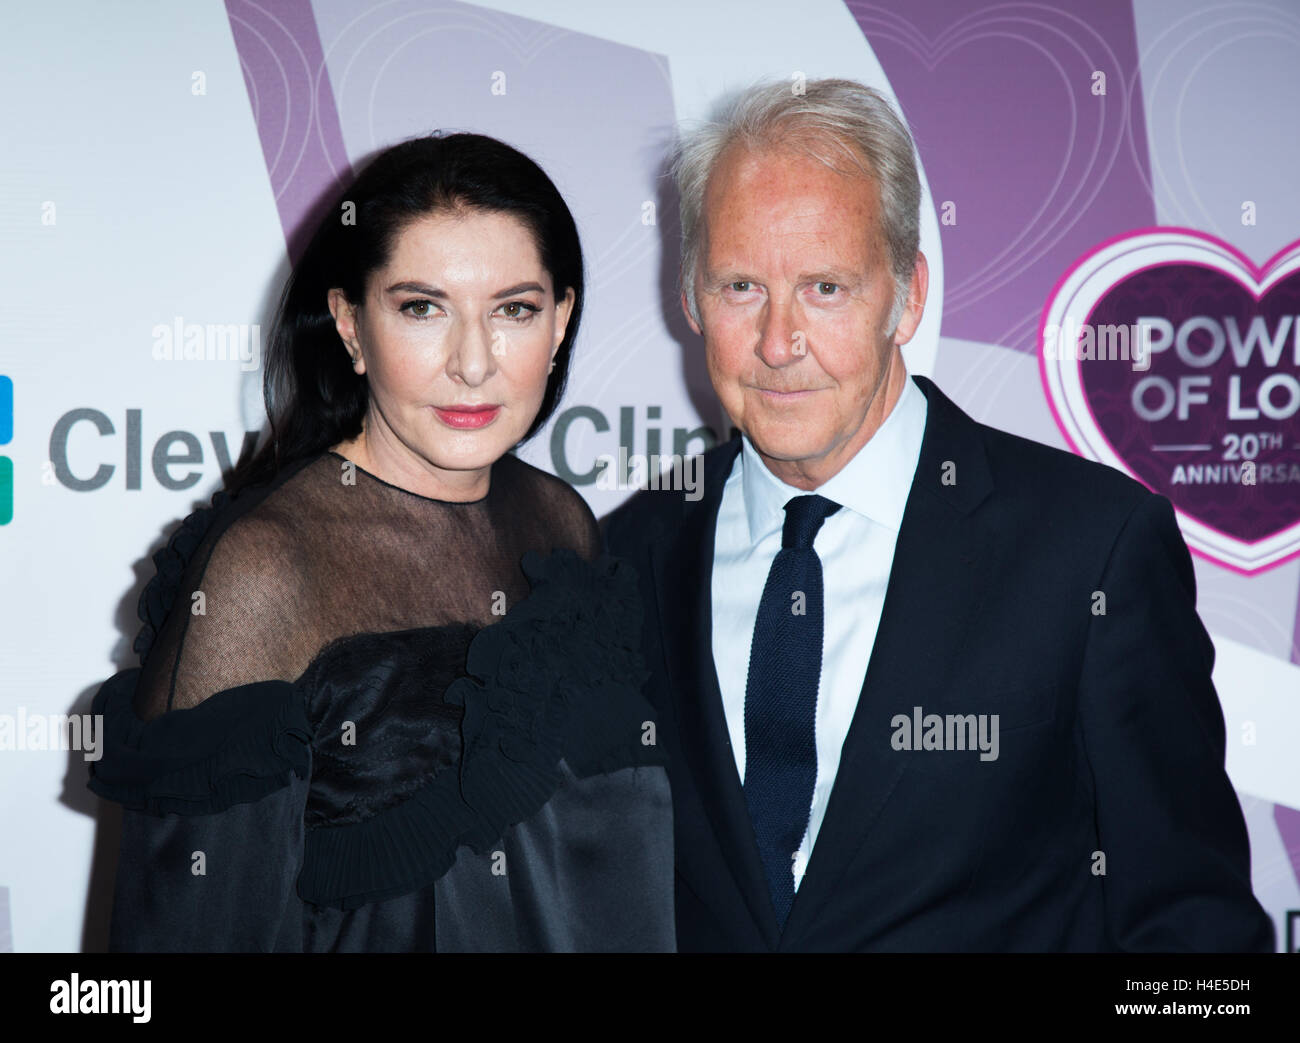 Marina Abramovic and Petter Skavlan attend Memory Alive's 20th Annual Power of Love Gala at MGM Grand Garden Arena - Stock Image